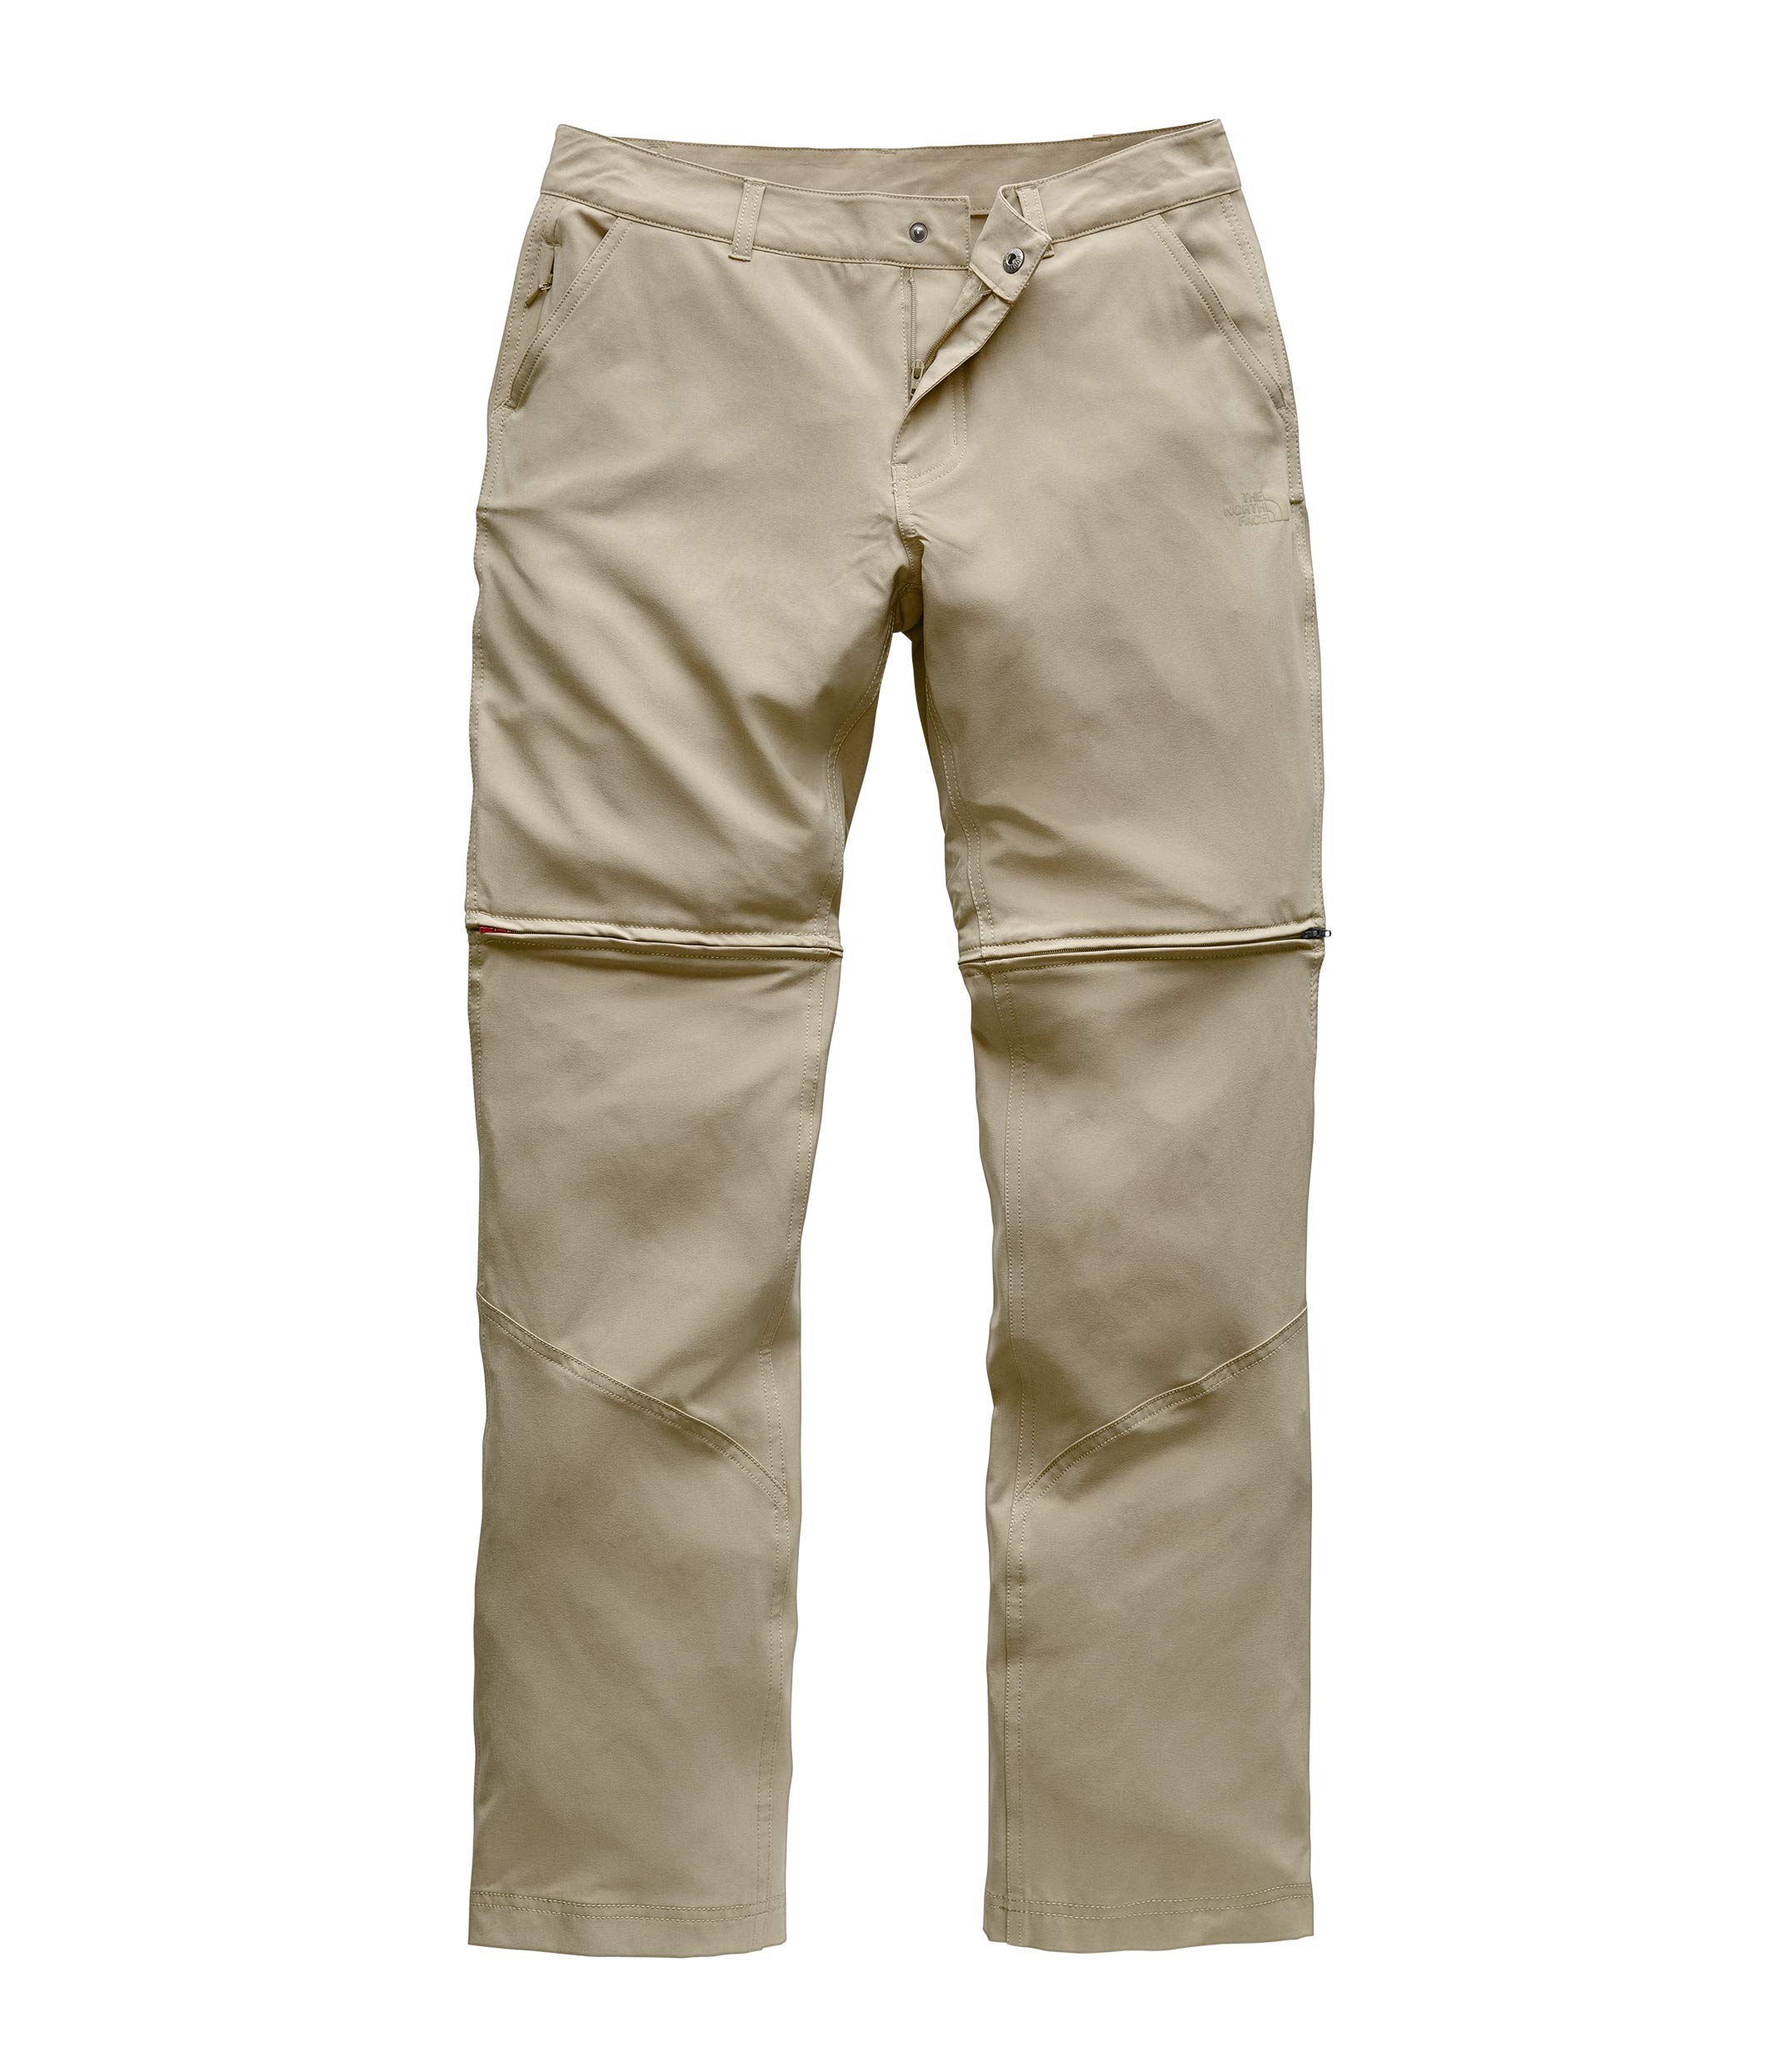 The North Face Women's Paramount Convertible Pant, Dune Beige, Size 8 Long